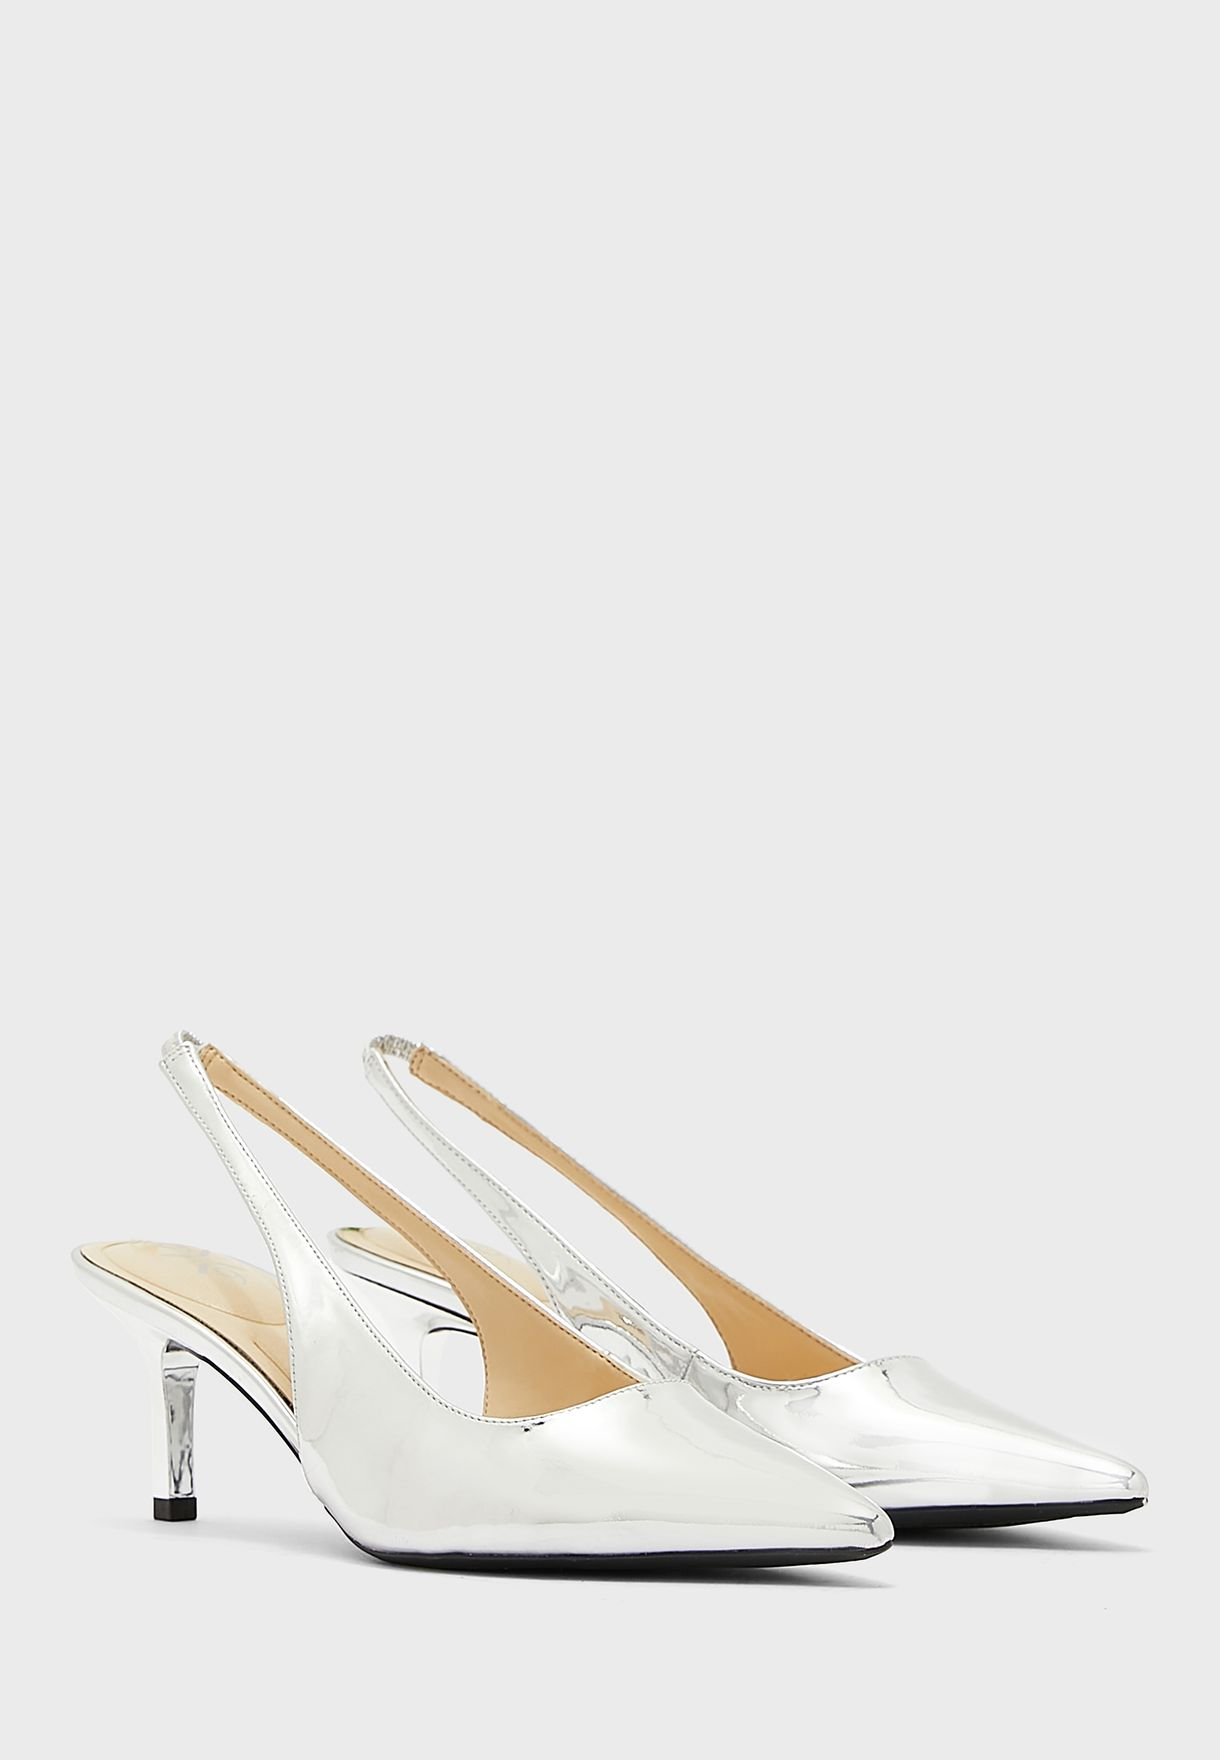 Kately9X93 Pointed Sling Back Mid-Heel Sandals